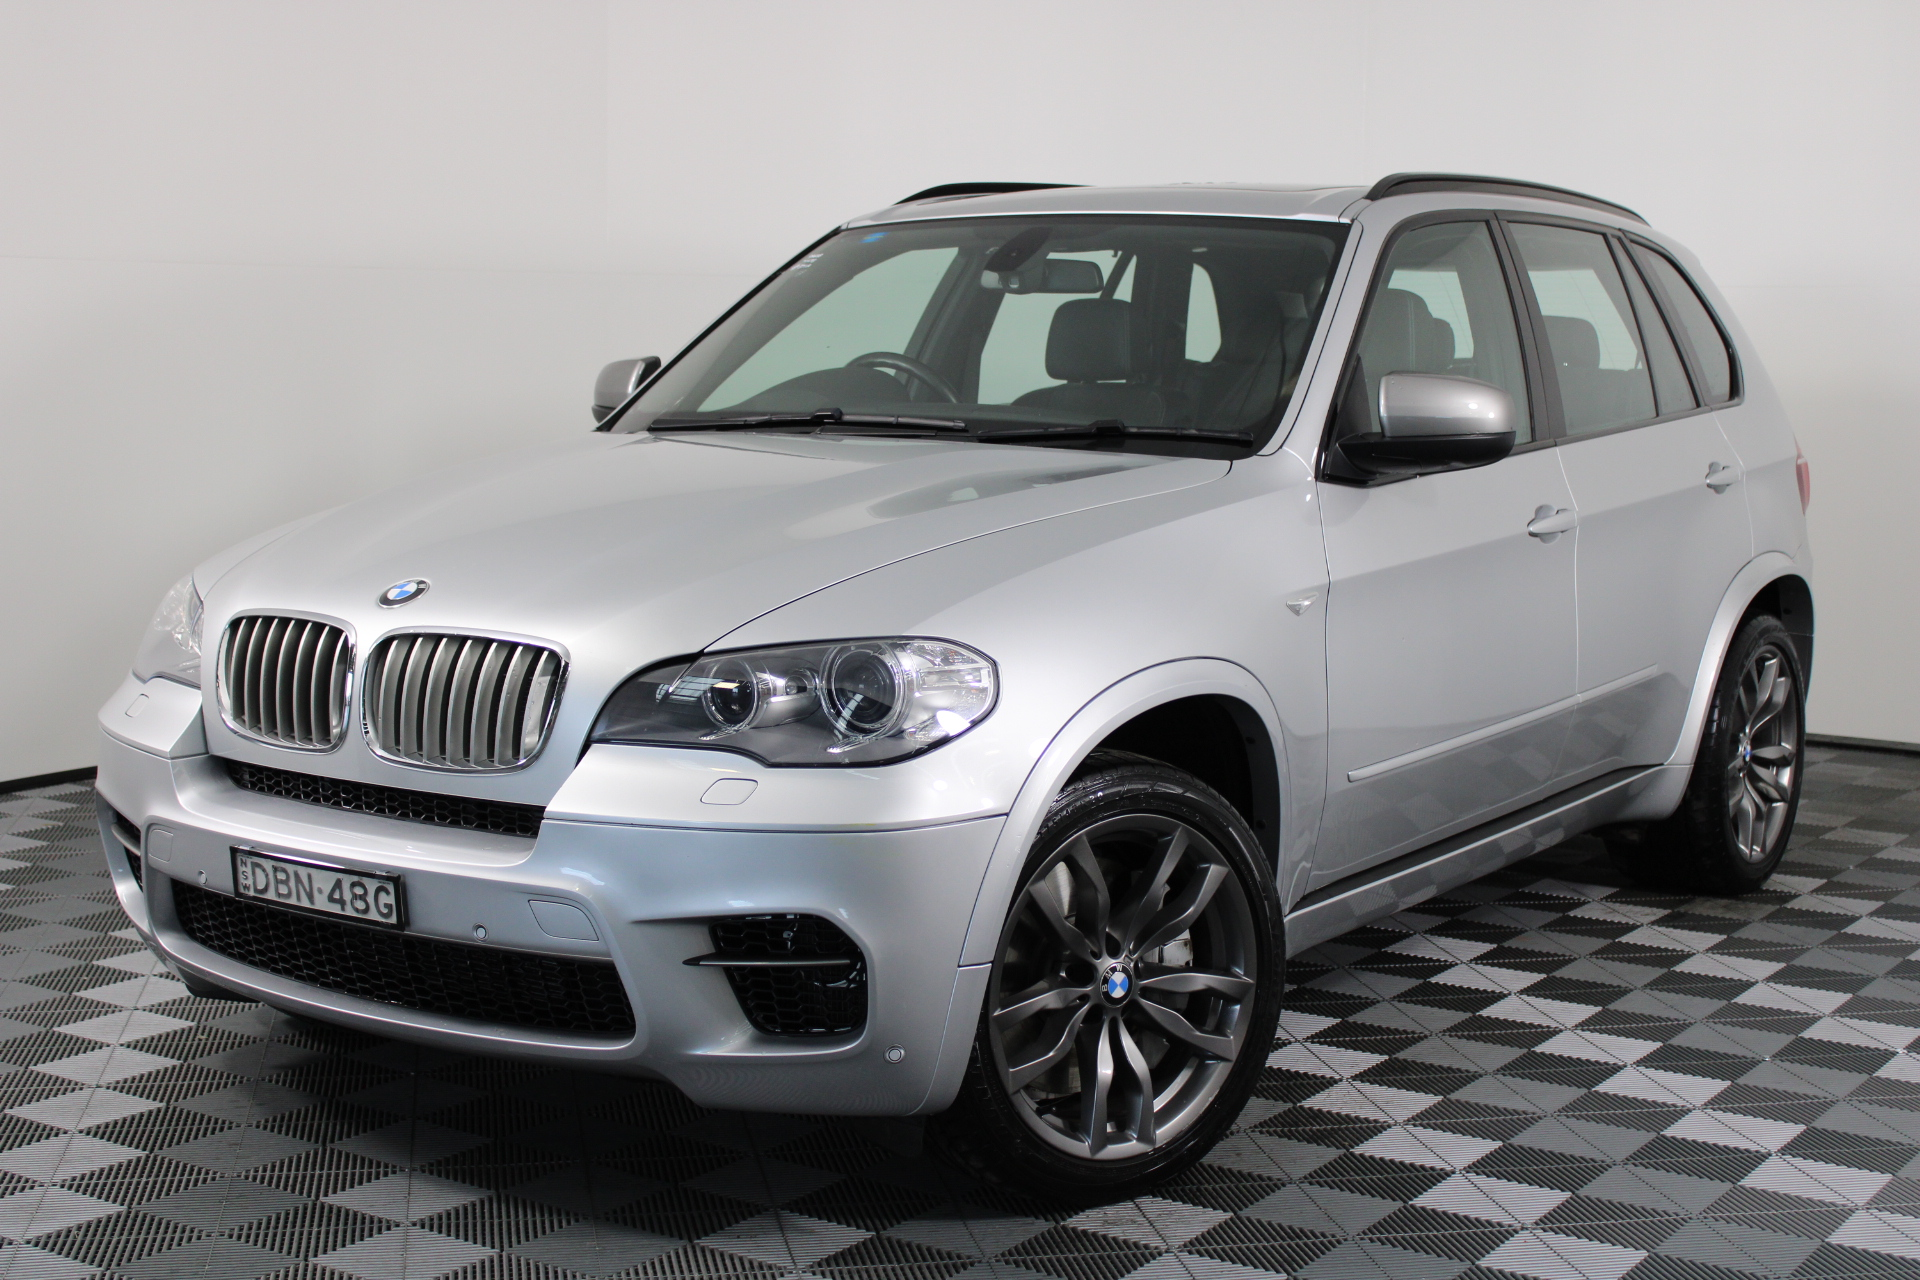 2013 BMW X5 M50d E70 LCI Turbo Diesel Automatic - 8 Speed Wagon